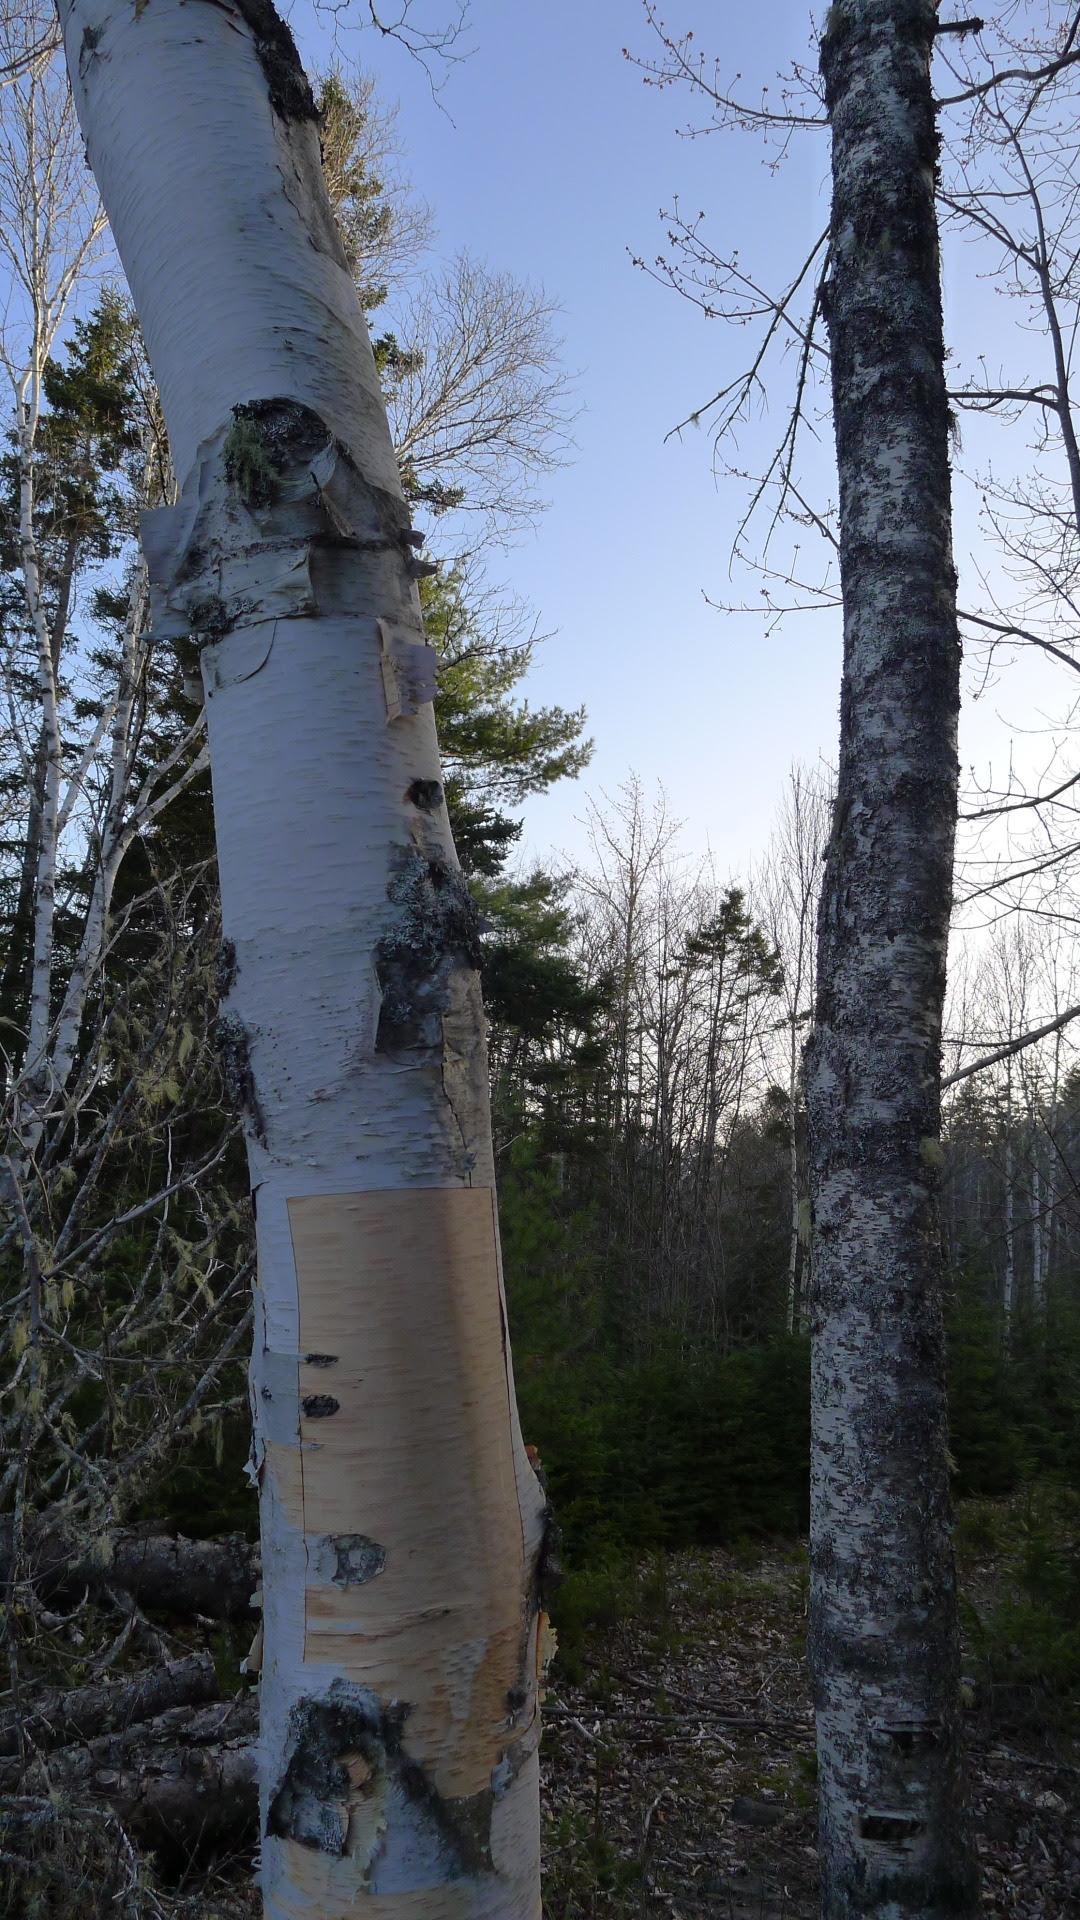 A very special thank you to the old birch trees outside Chester, Nova Scotia that provided some bark for the cassette cases. Sustainably harvested, and offerings were made in return.